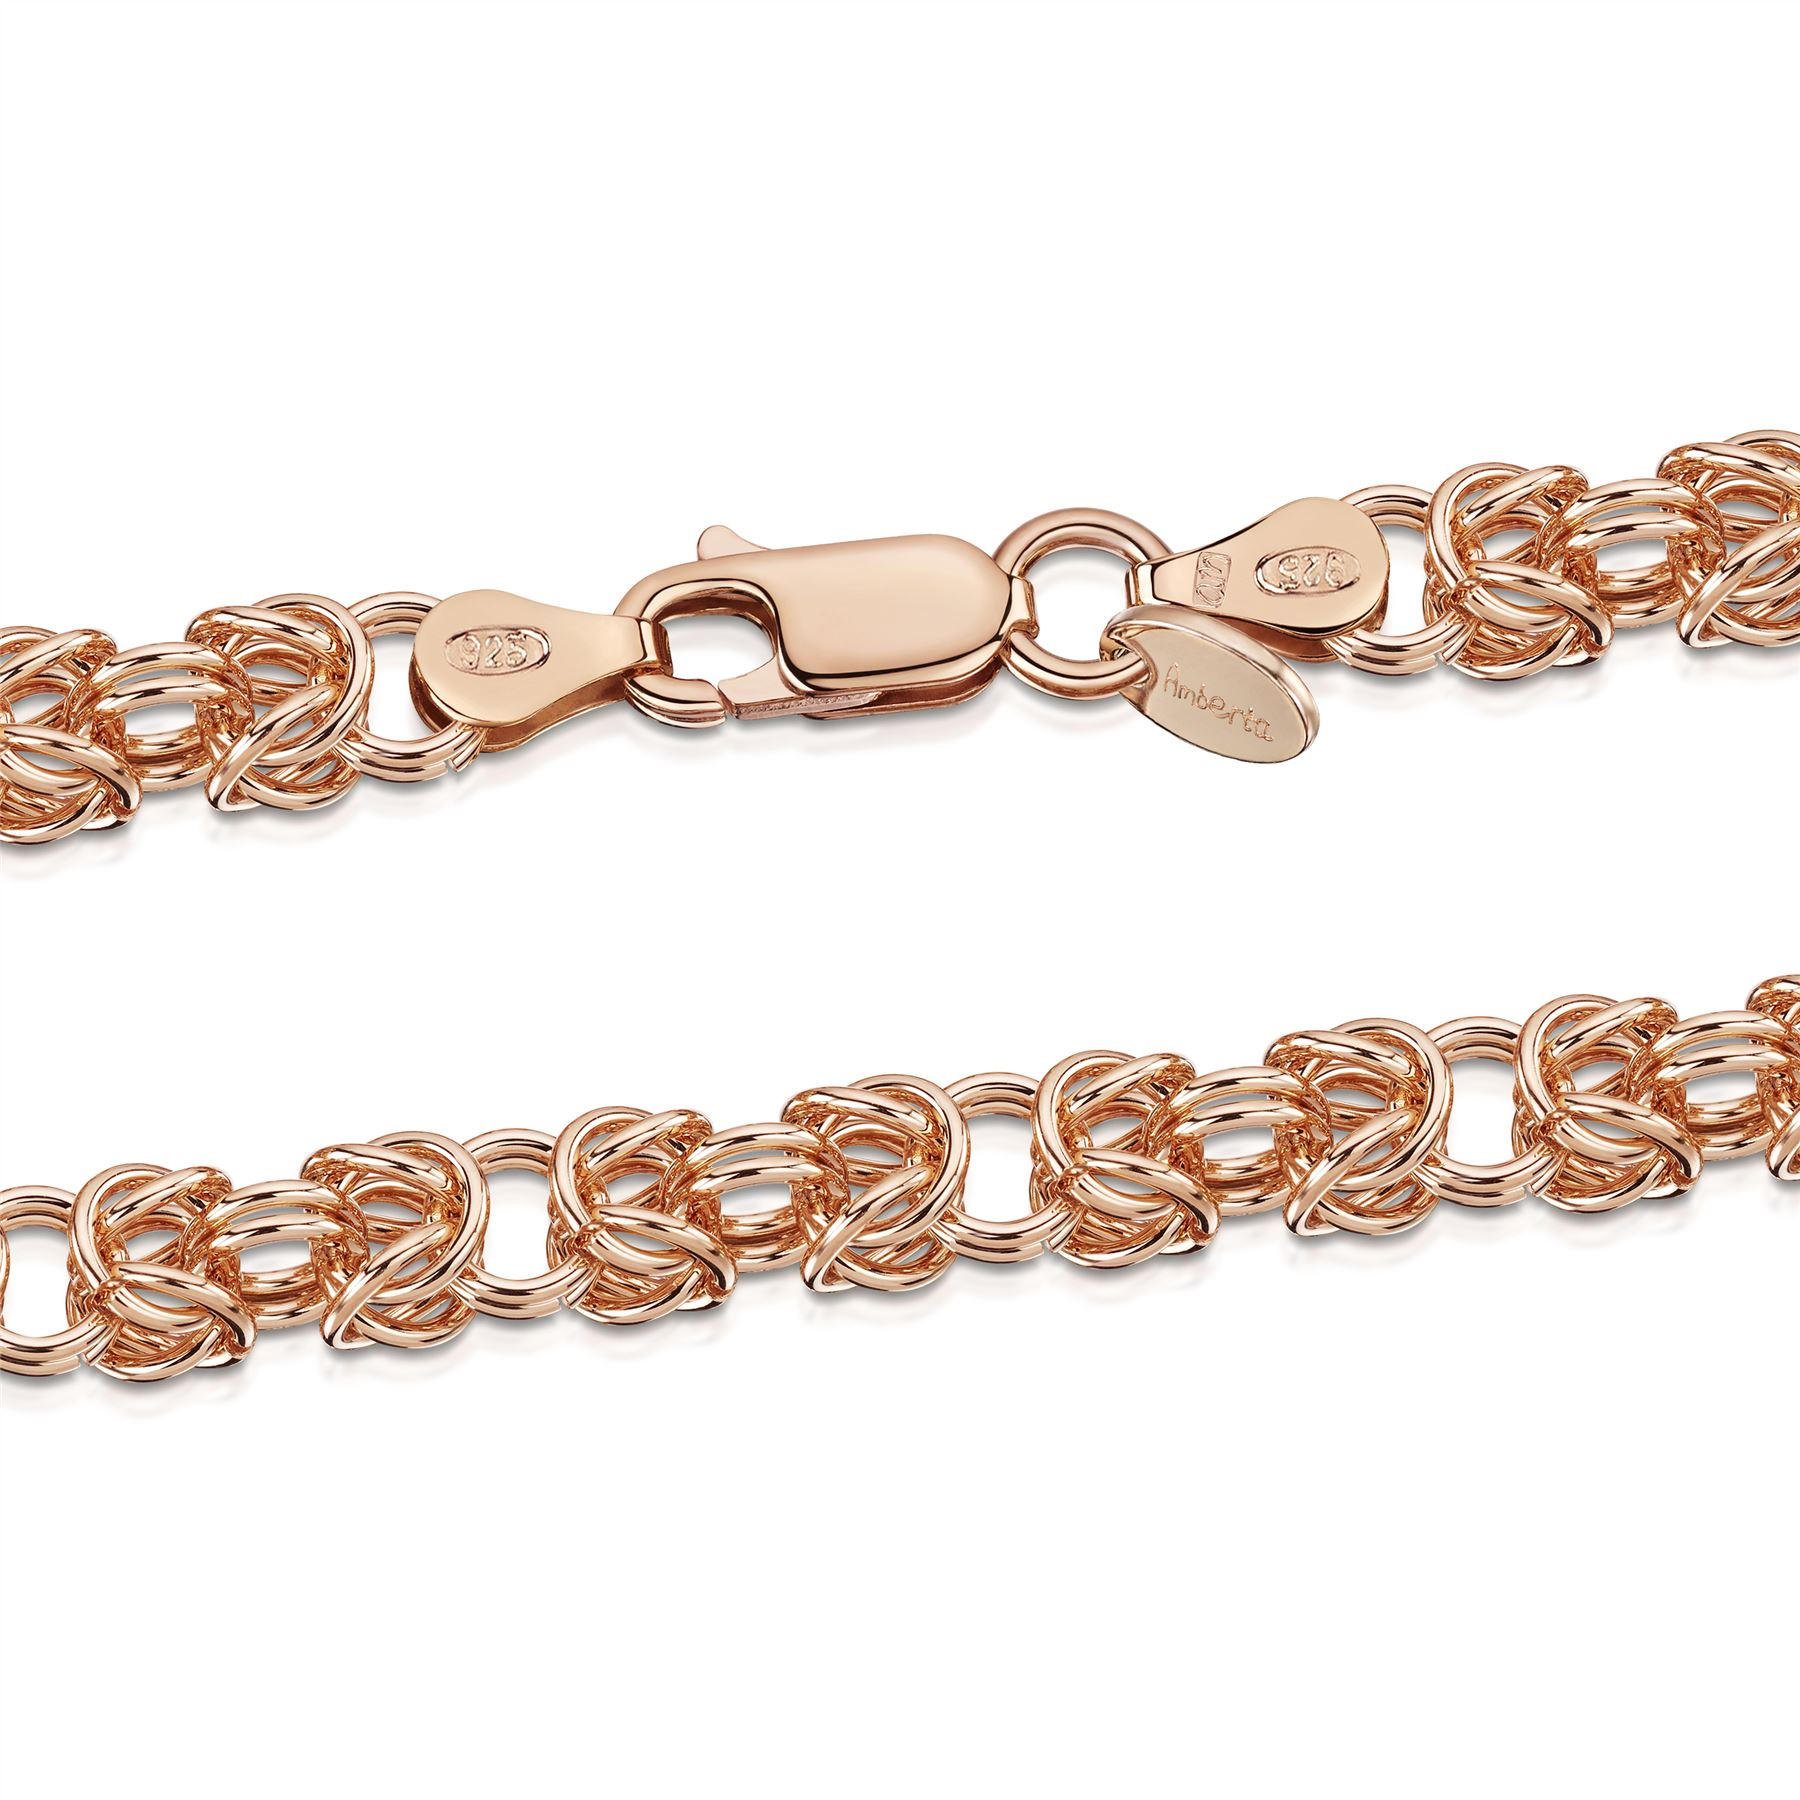 Amberta-Genuine-Real-925-Sterling-Silver-Chain-Bracelet-for-Women-from-Italy miniature 16